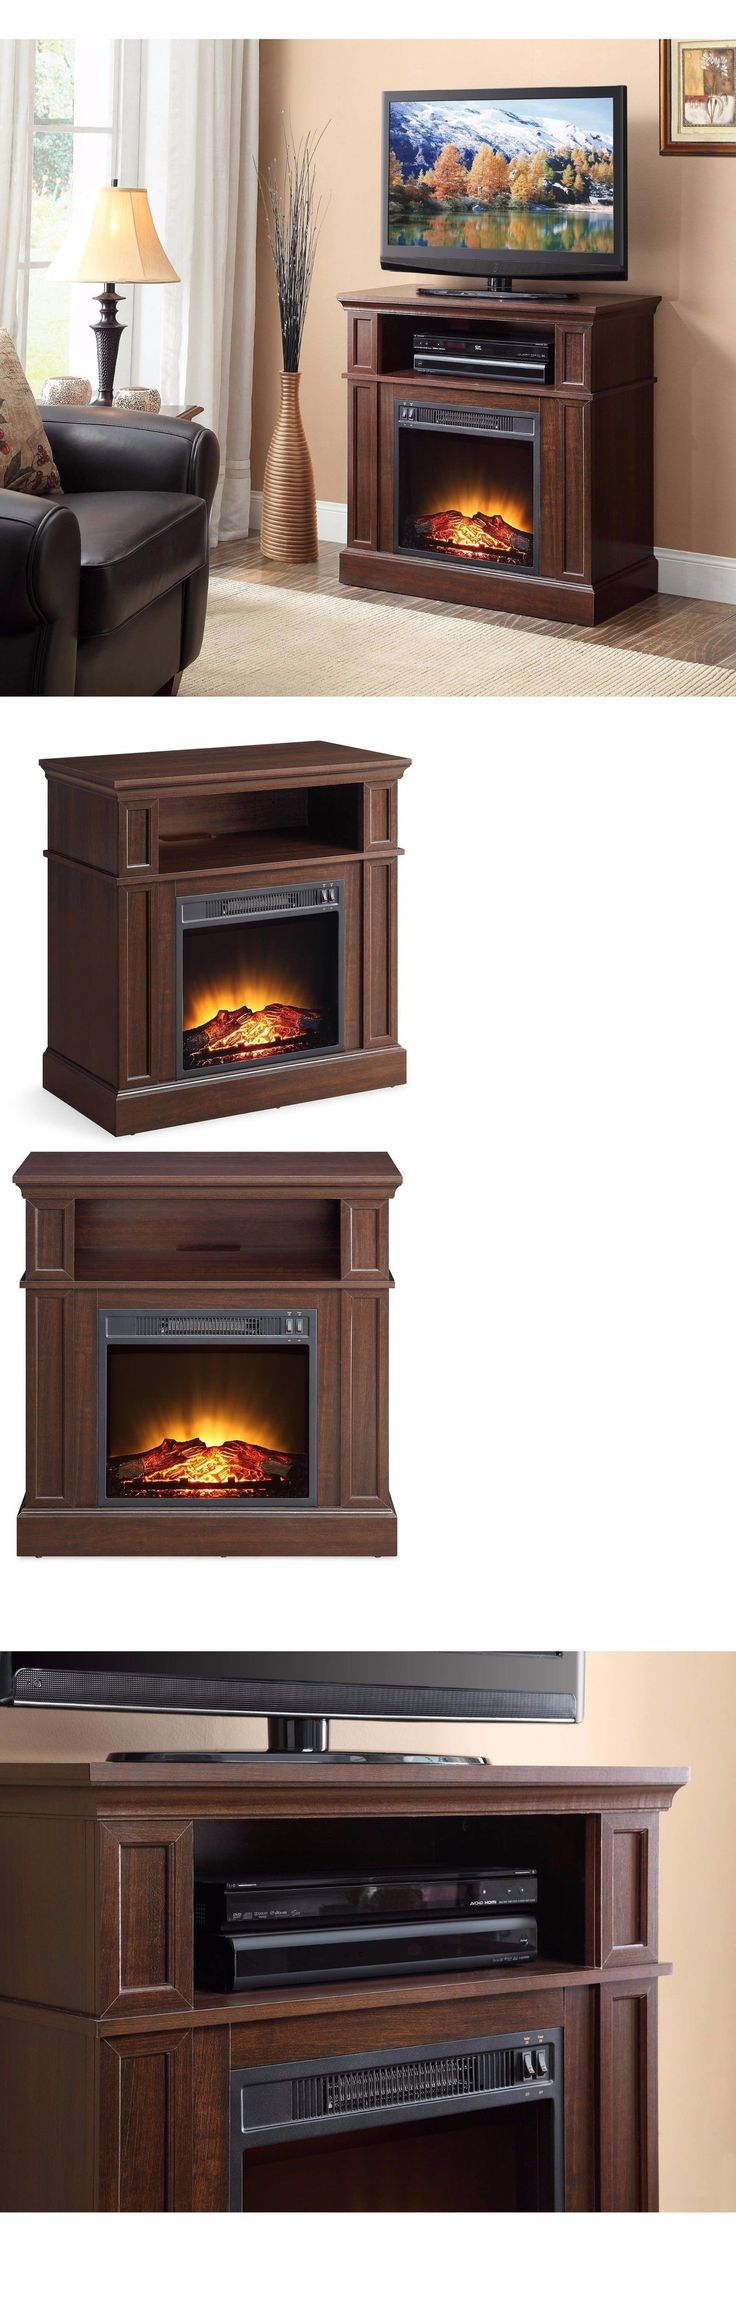 Fireplaces 175756: Electric Fireplace Media Center Fireplaces Entertainment Console Tv Stand Home -> BUY IT NOW ONLY: $199.97 on eBay!